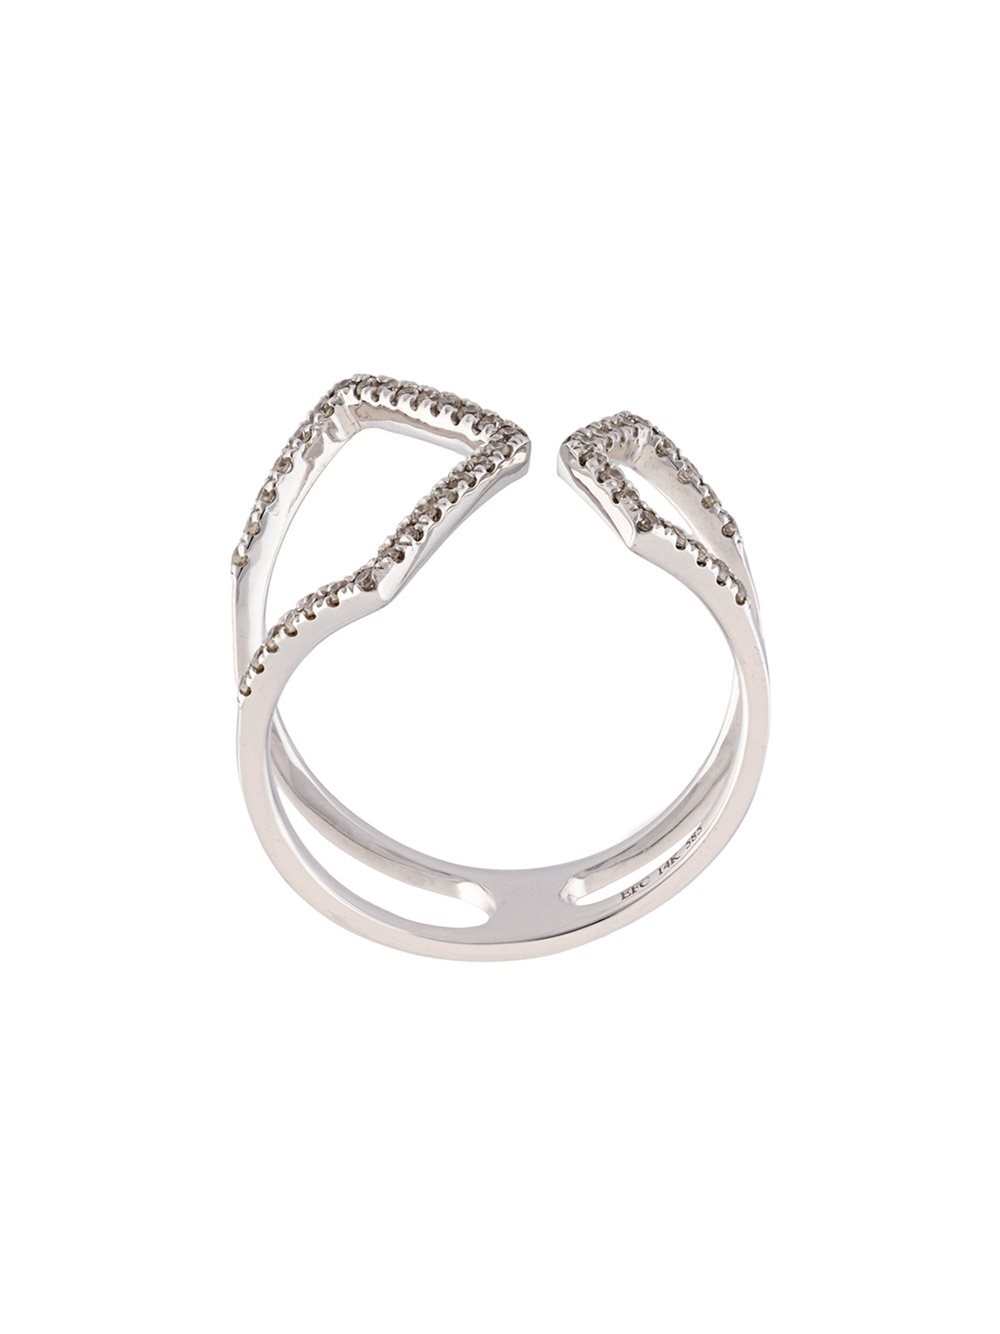 Ef Collection Diamond Split Chevron Ring White Gold Women Within Newest Chevron Rings White Gold (View 10 of 15)